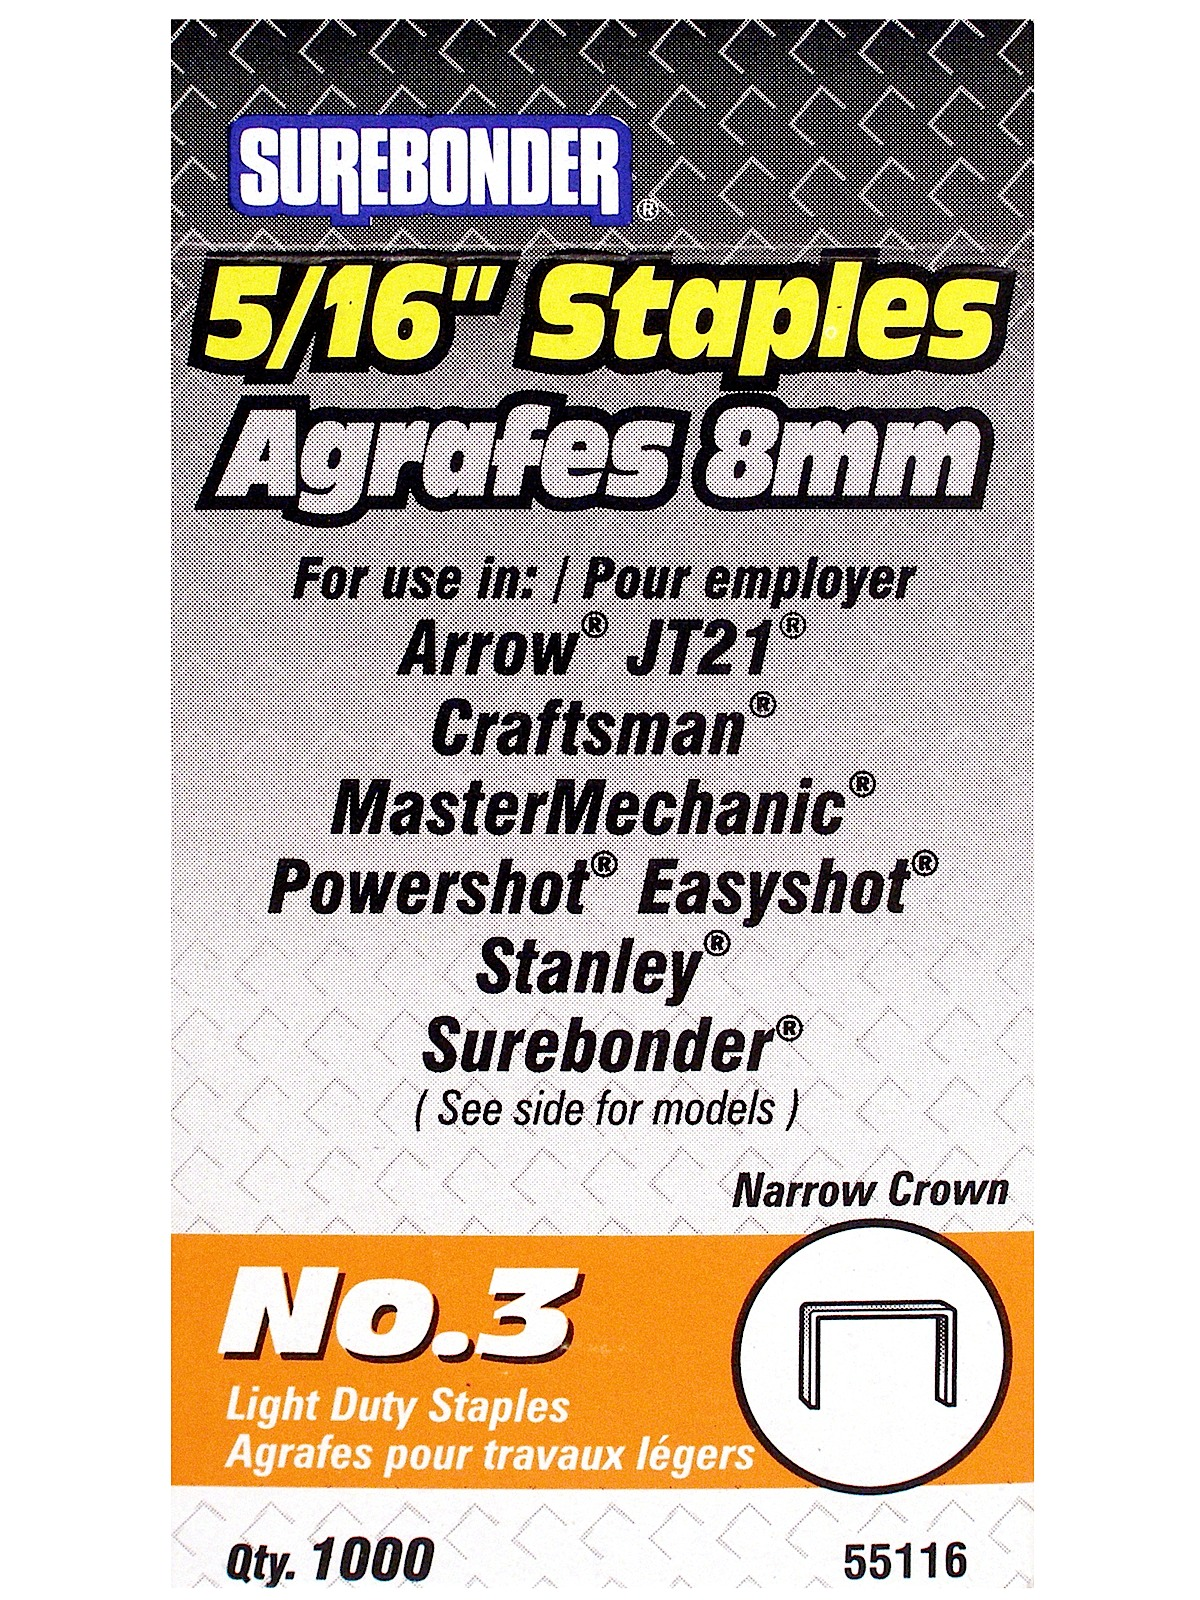 No. 3 Light Duty Staples